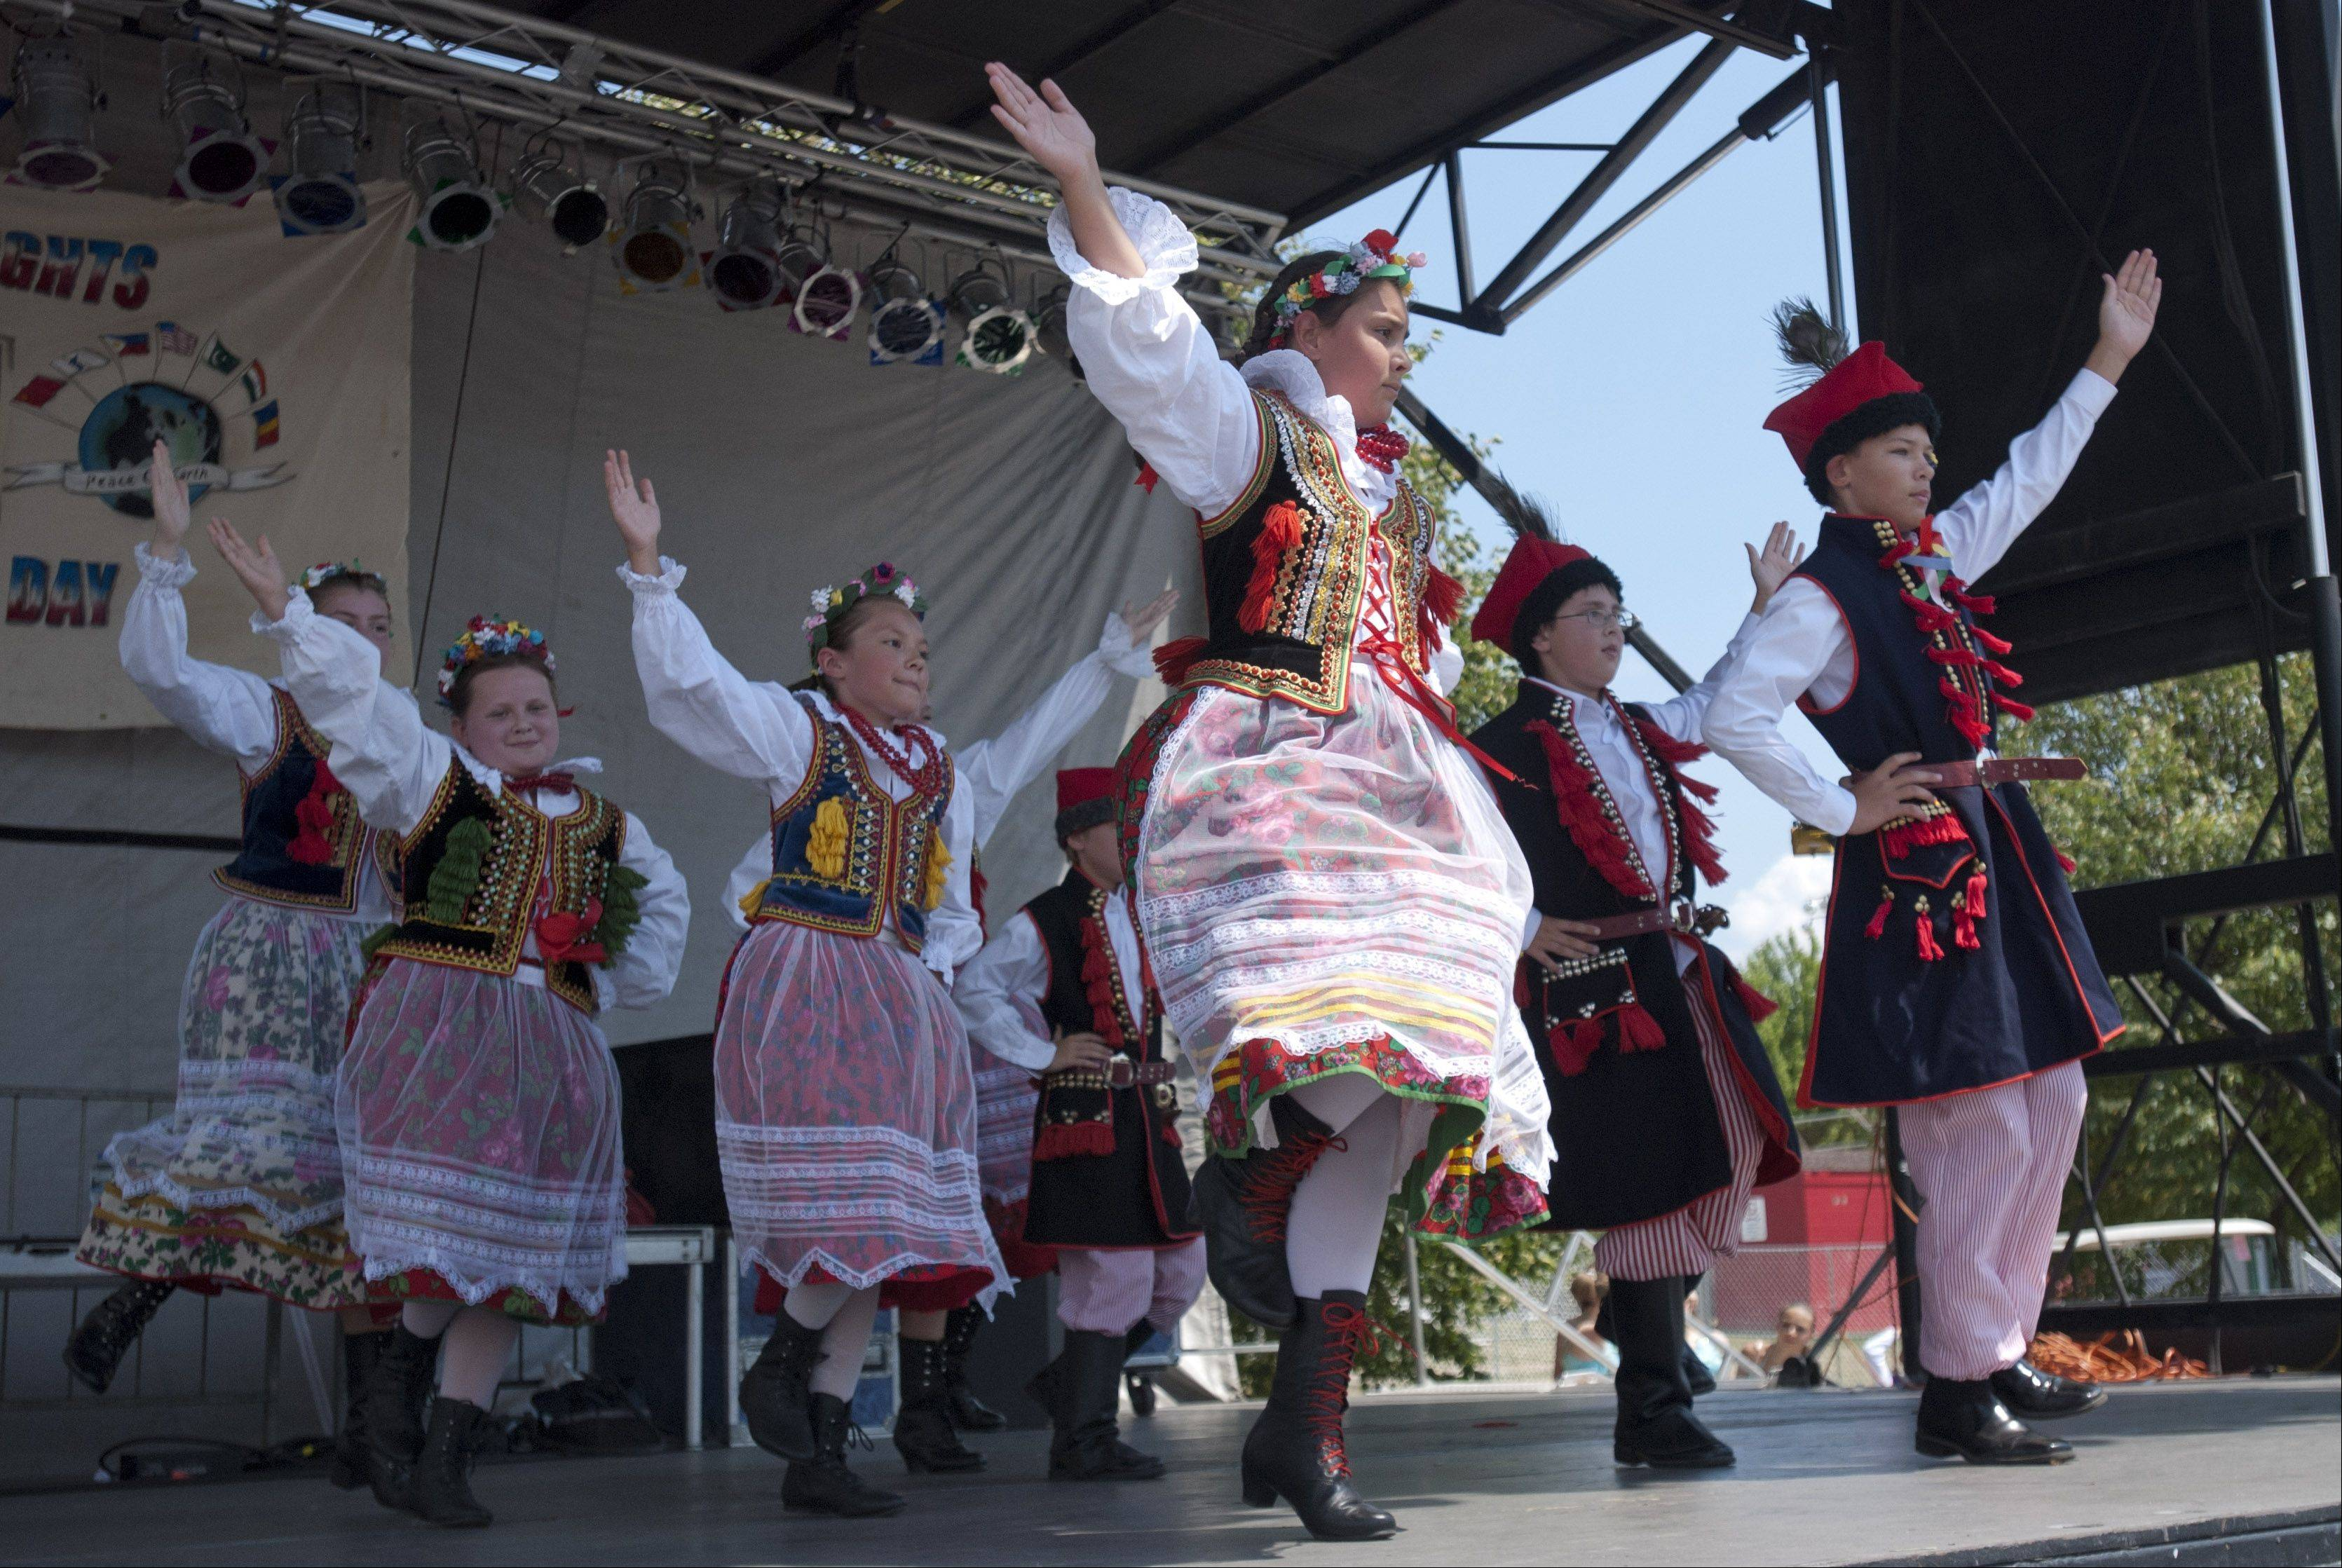 Members of the Addison Park District's Polish dance group perform Sunday during International Day at Glendale Heights Fest at Camera Park.